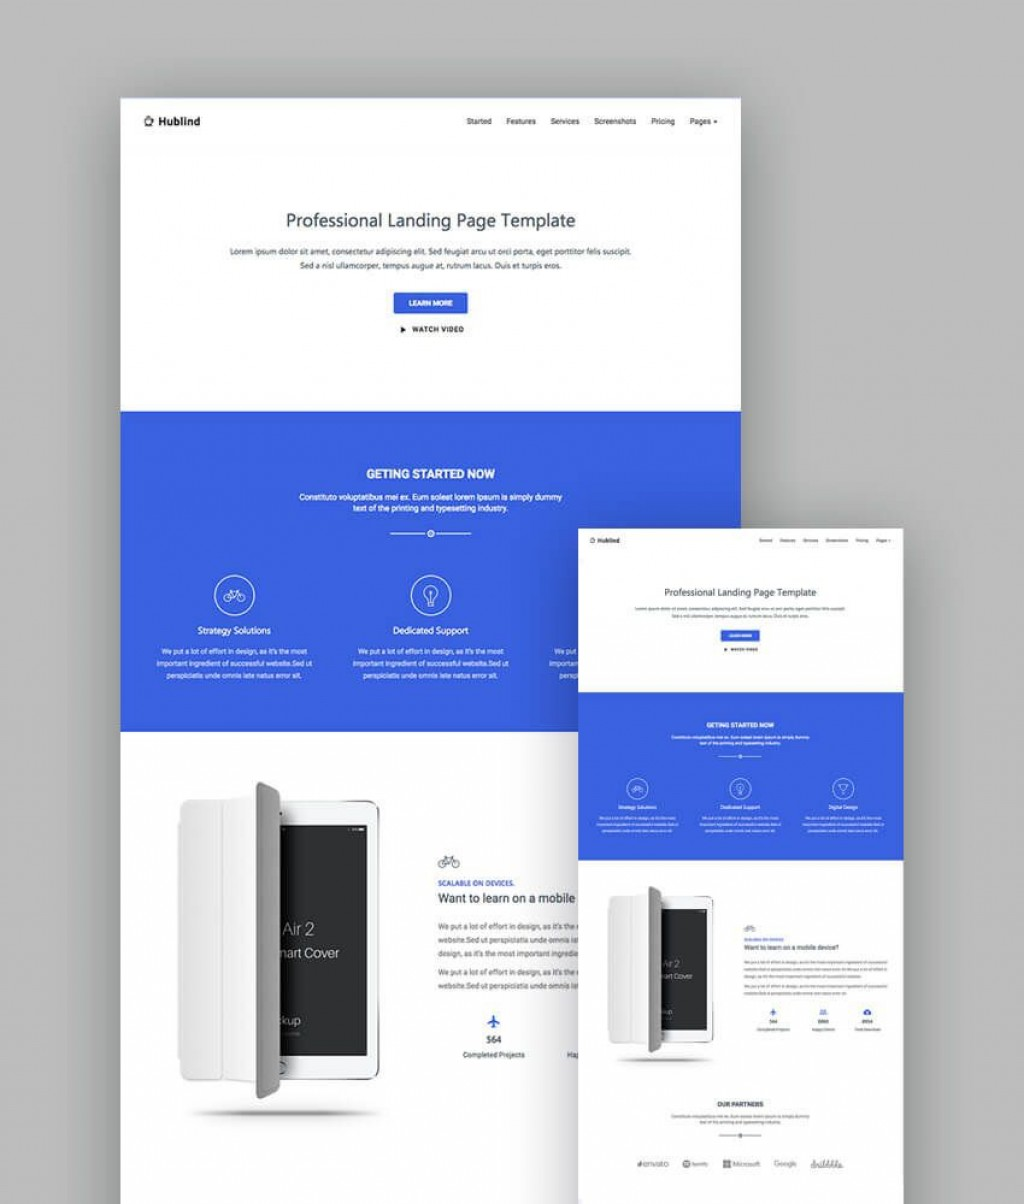 002 Formidable Responsive Landing Page Template Highest Clarity  Templates Marketo Free Pardot Html5 DownloadLarge